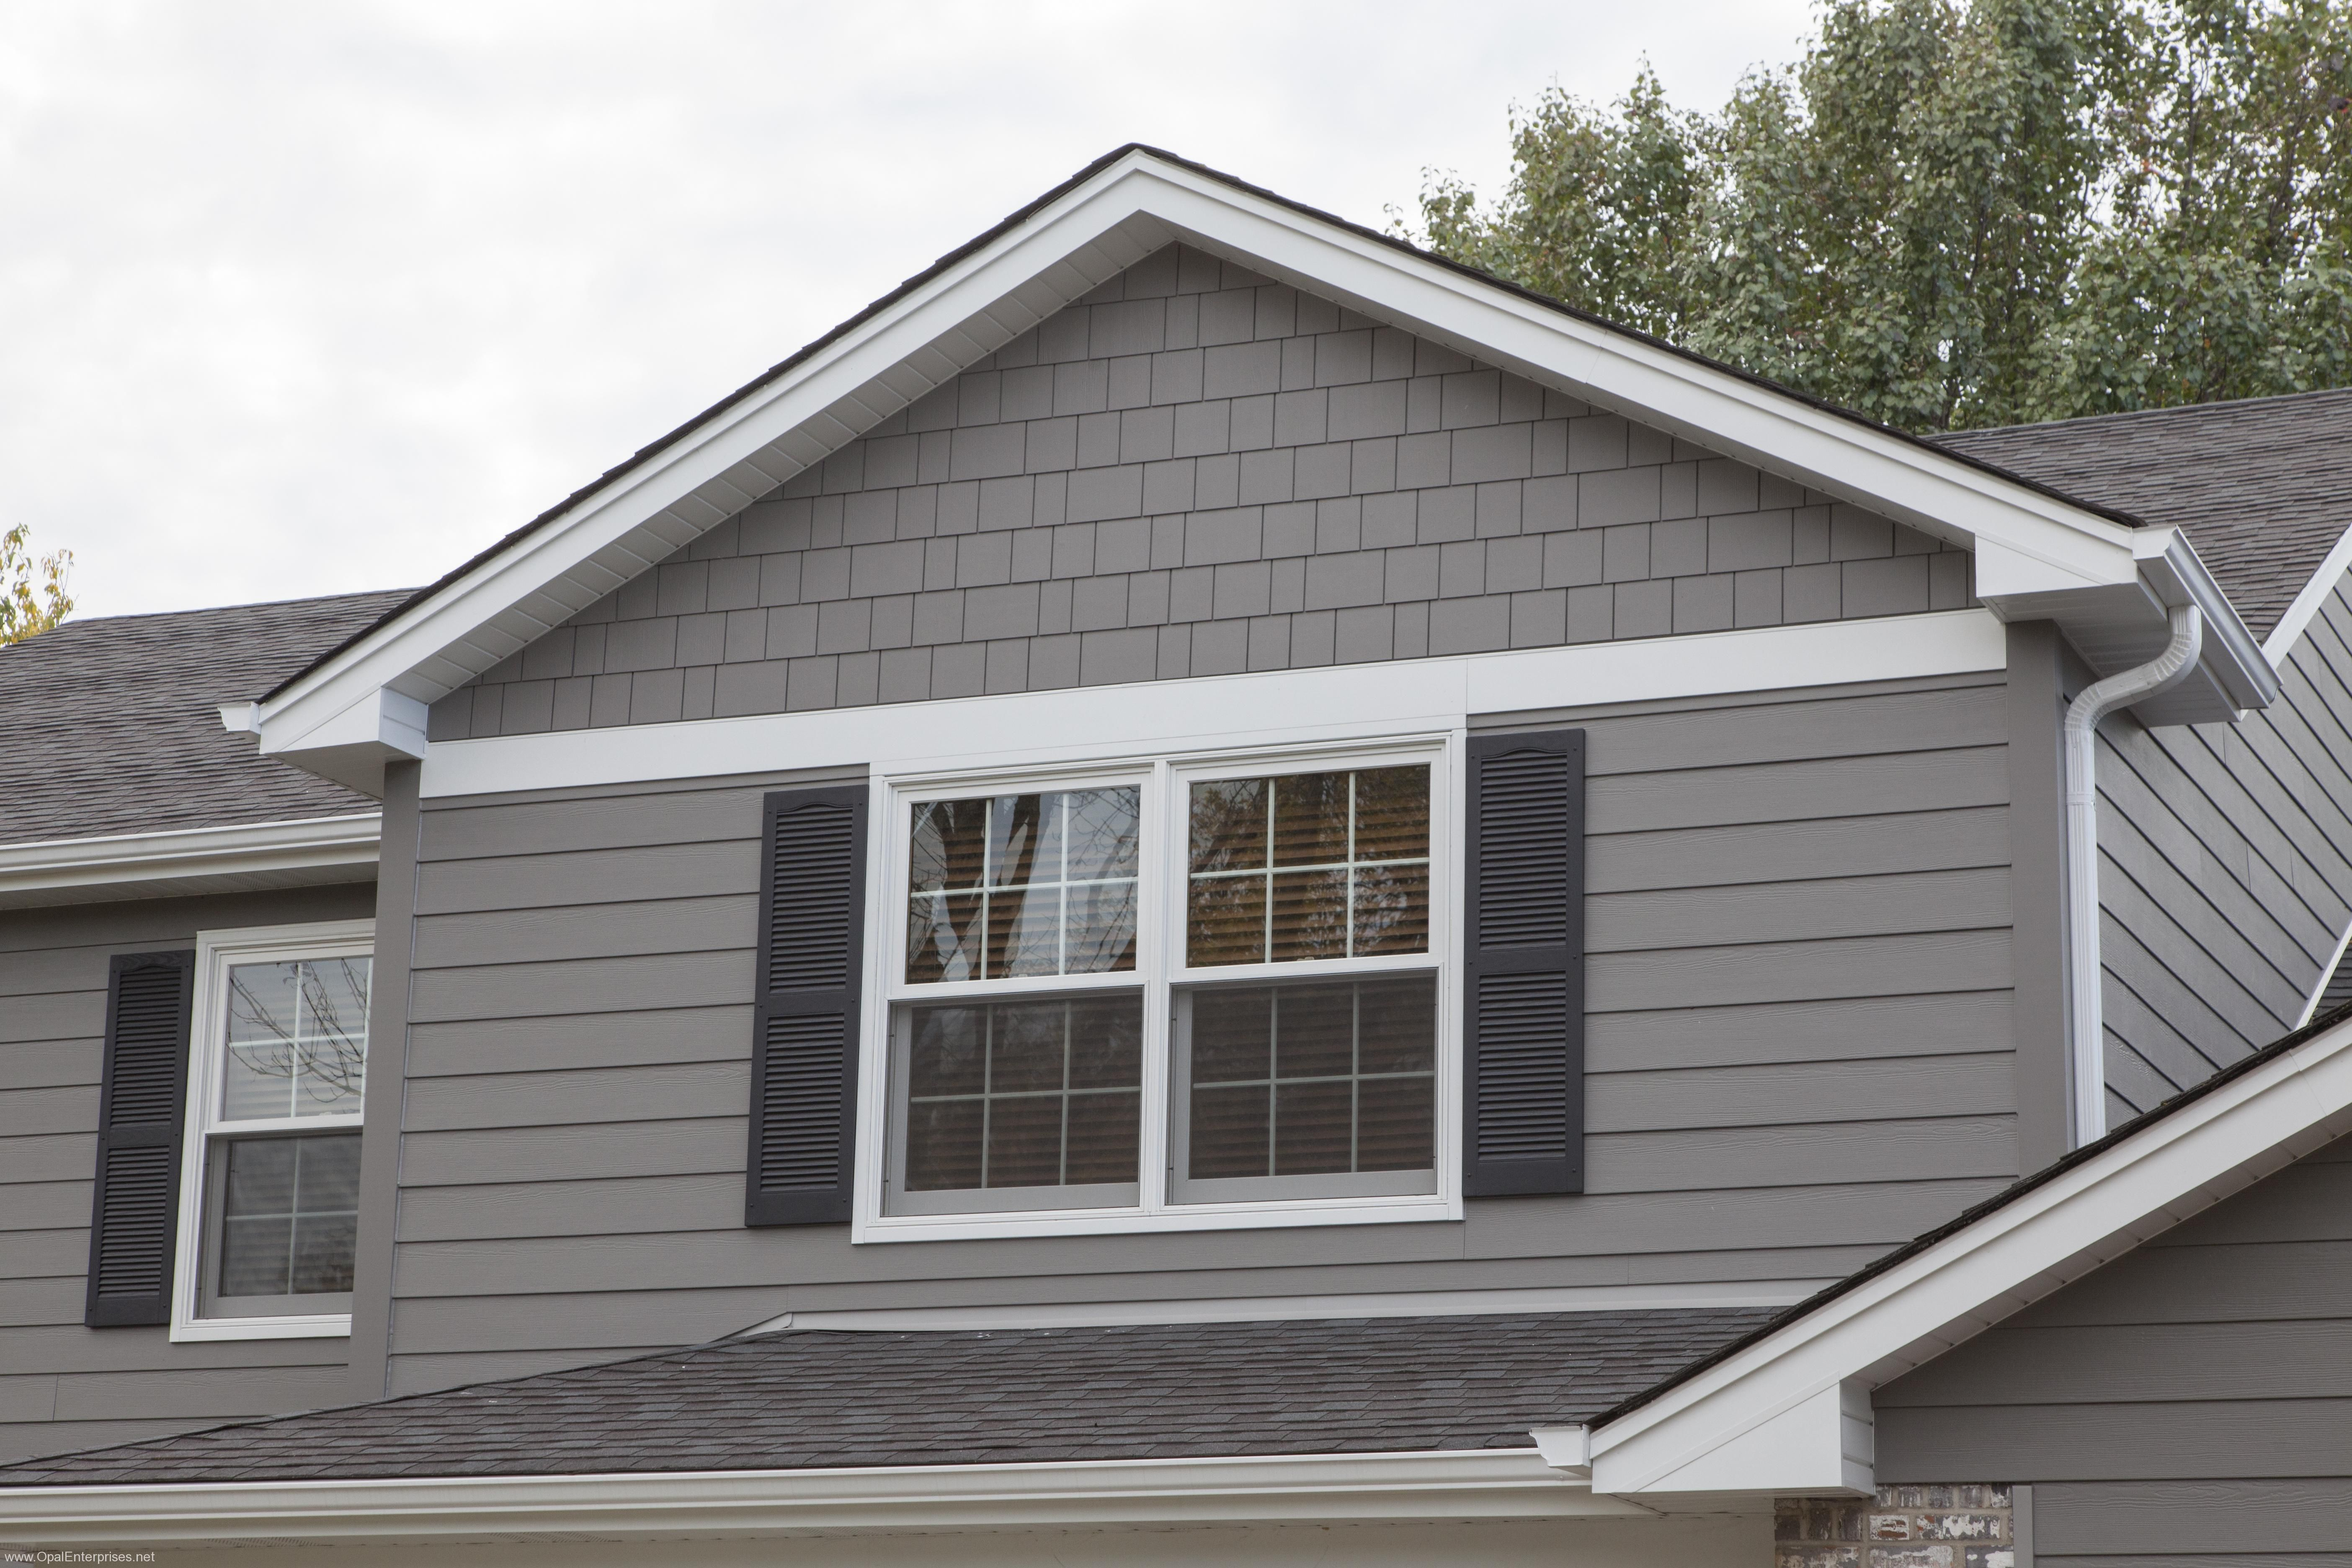 Aged Pewter Hardie Siding In Straight Edge Shake And 7 Lap Plank House Siding Siding Colors For Houses House Siding Options